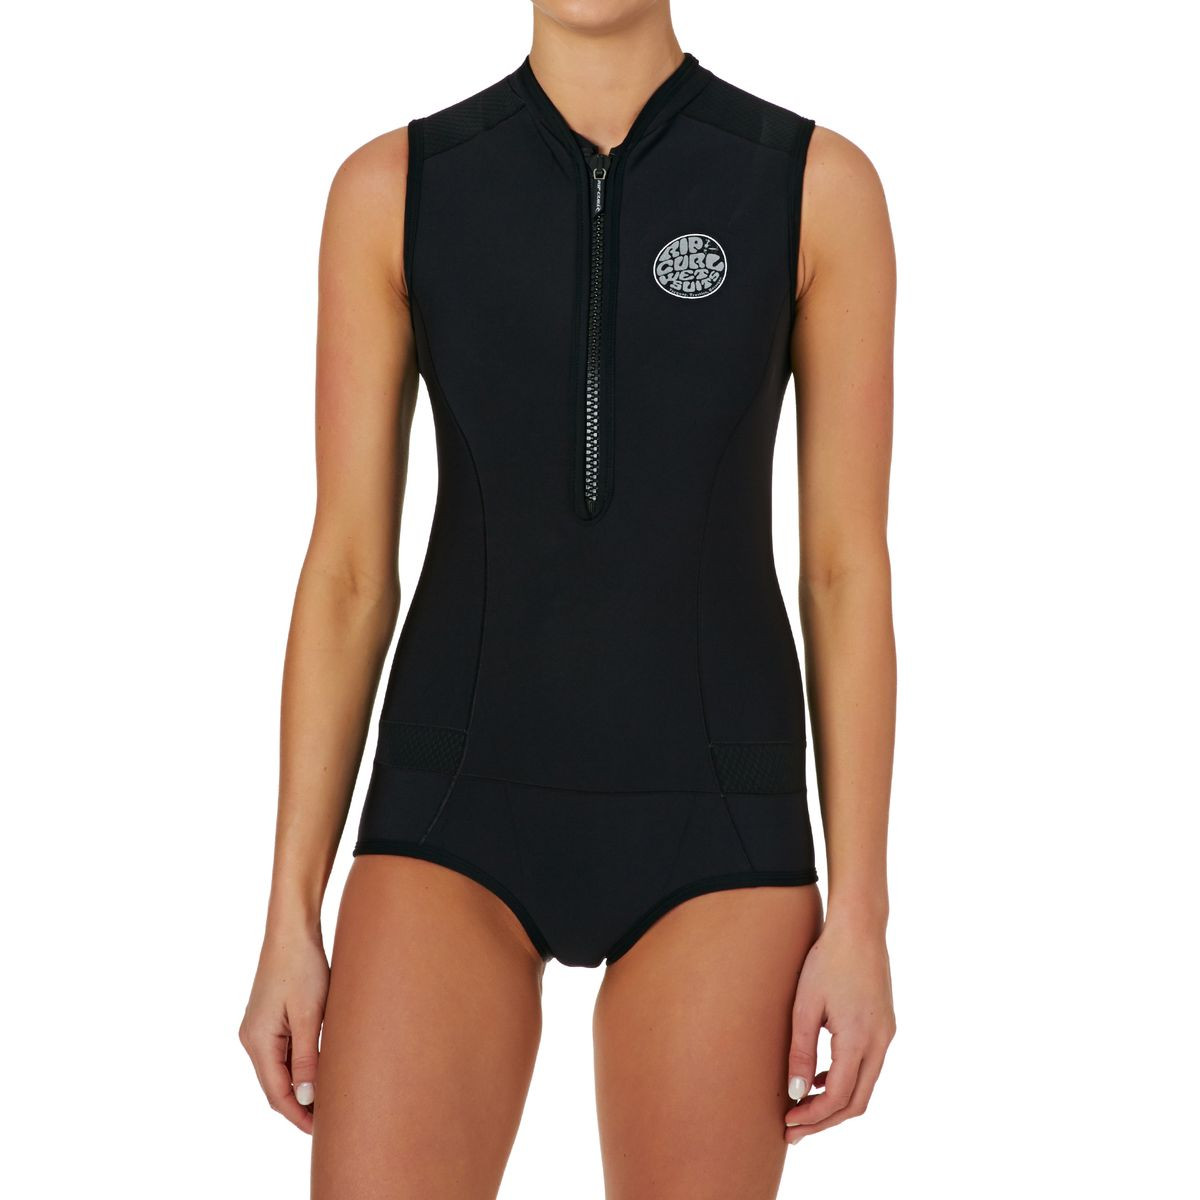 Rip Curl Womens G-bomb 1mm Front Zip Capsleeve Shorty Wetsuit - Black